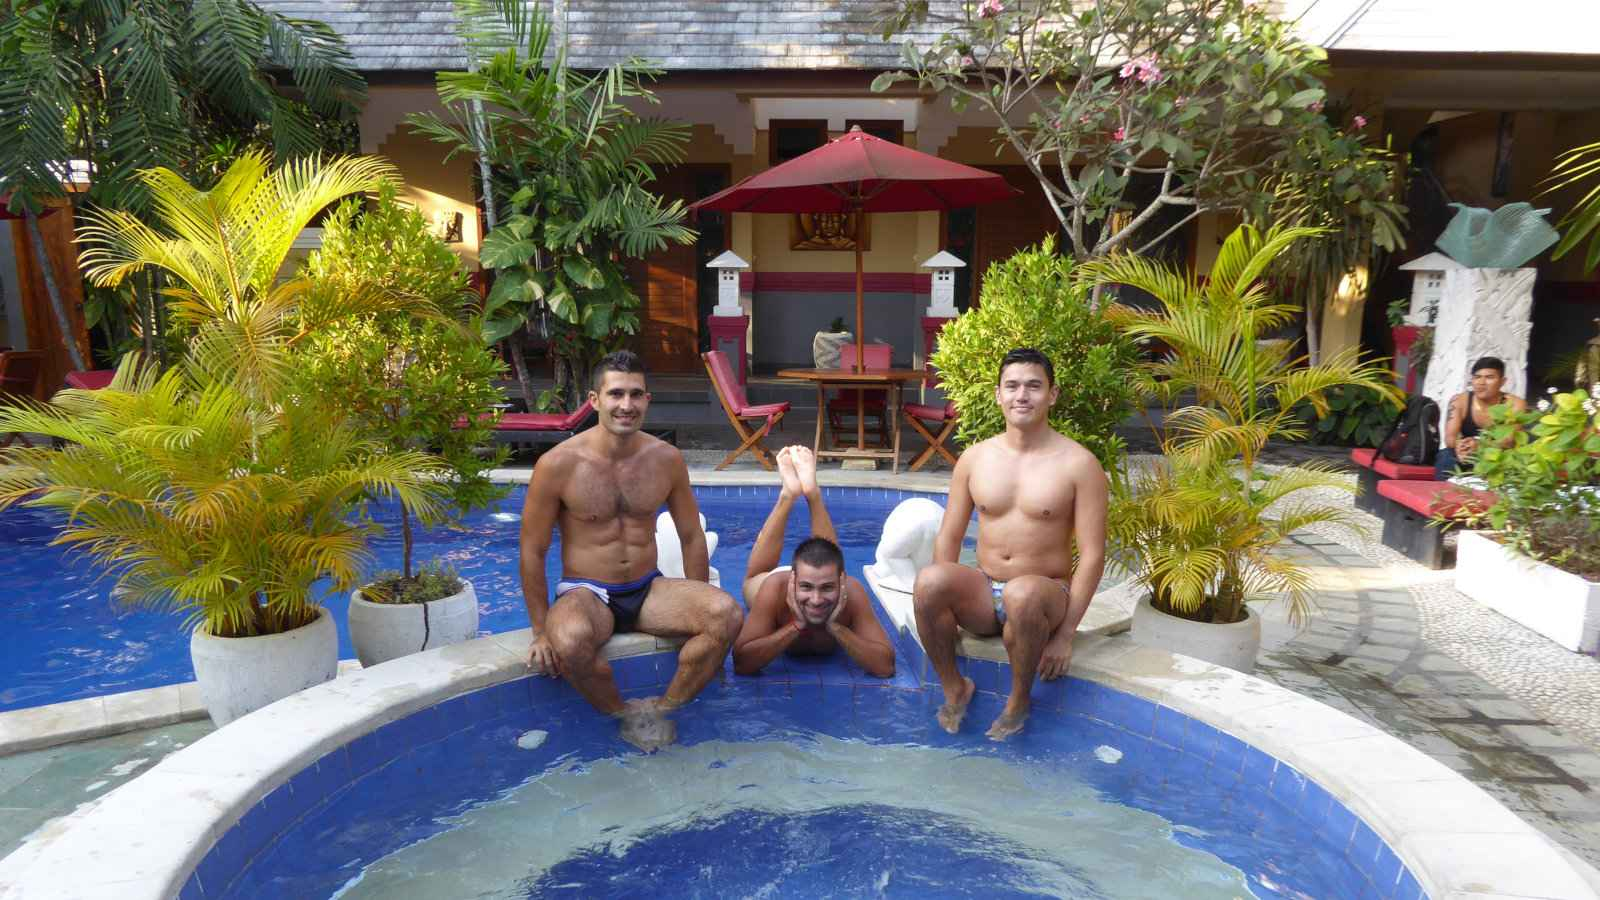 You'll definitely make new friends at the gay friendly, colourful and fabulous BaliNea Villa and Spa